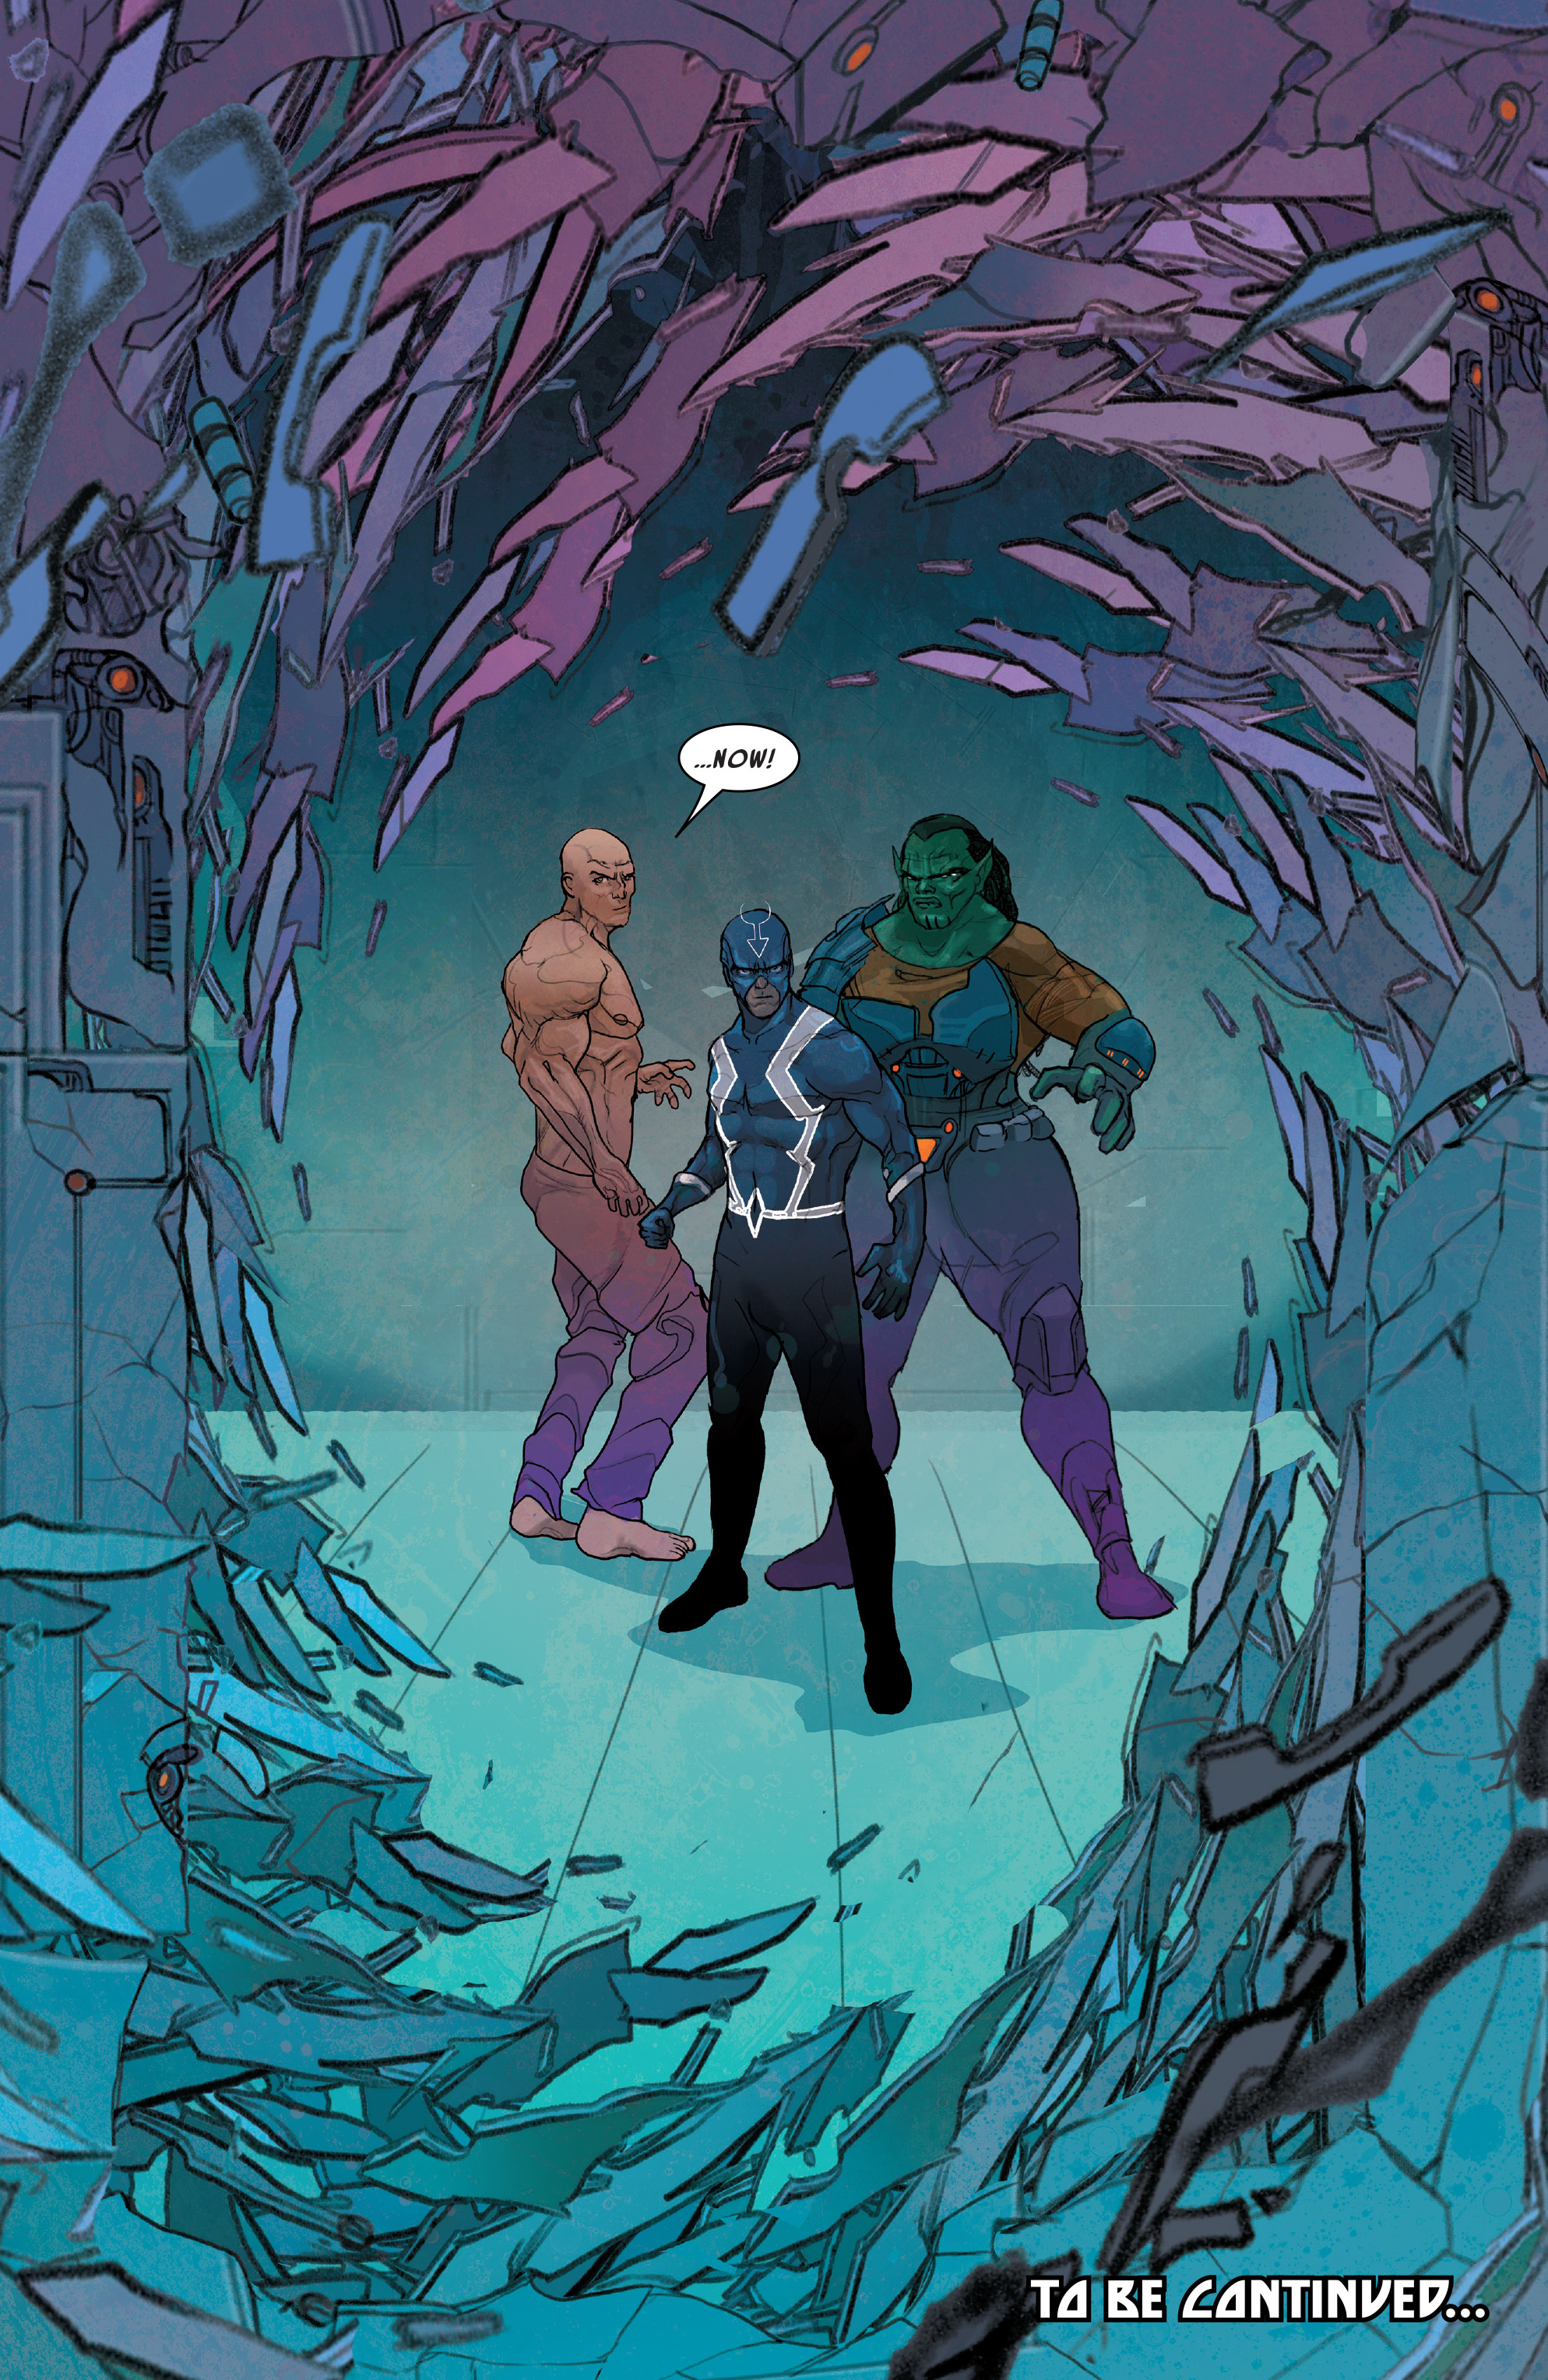 Read online Black Bolt comic -  Issue #2 - 22